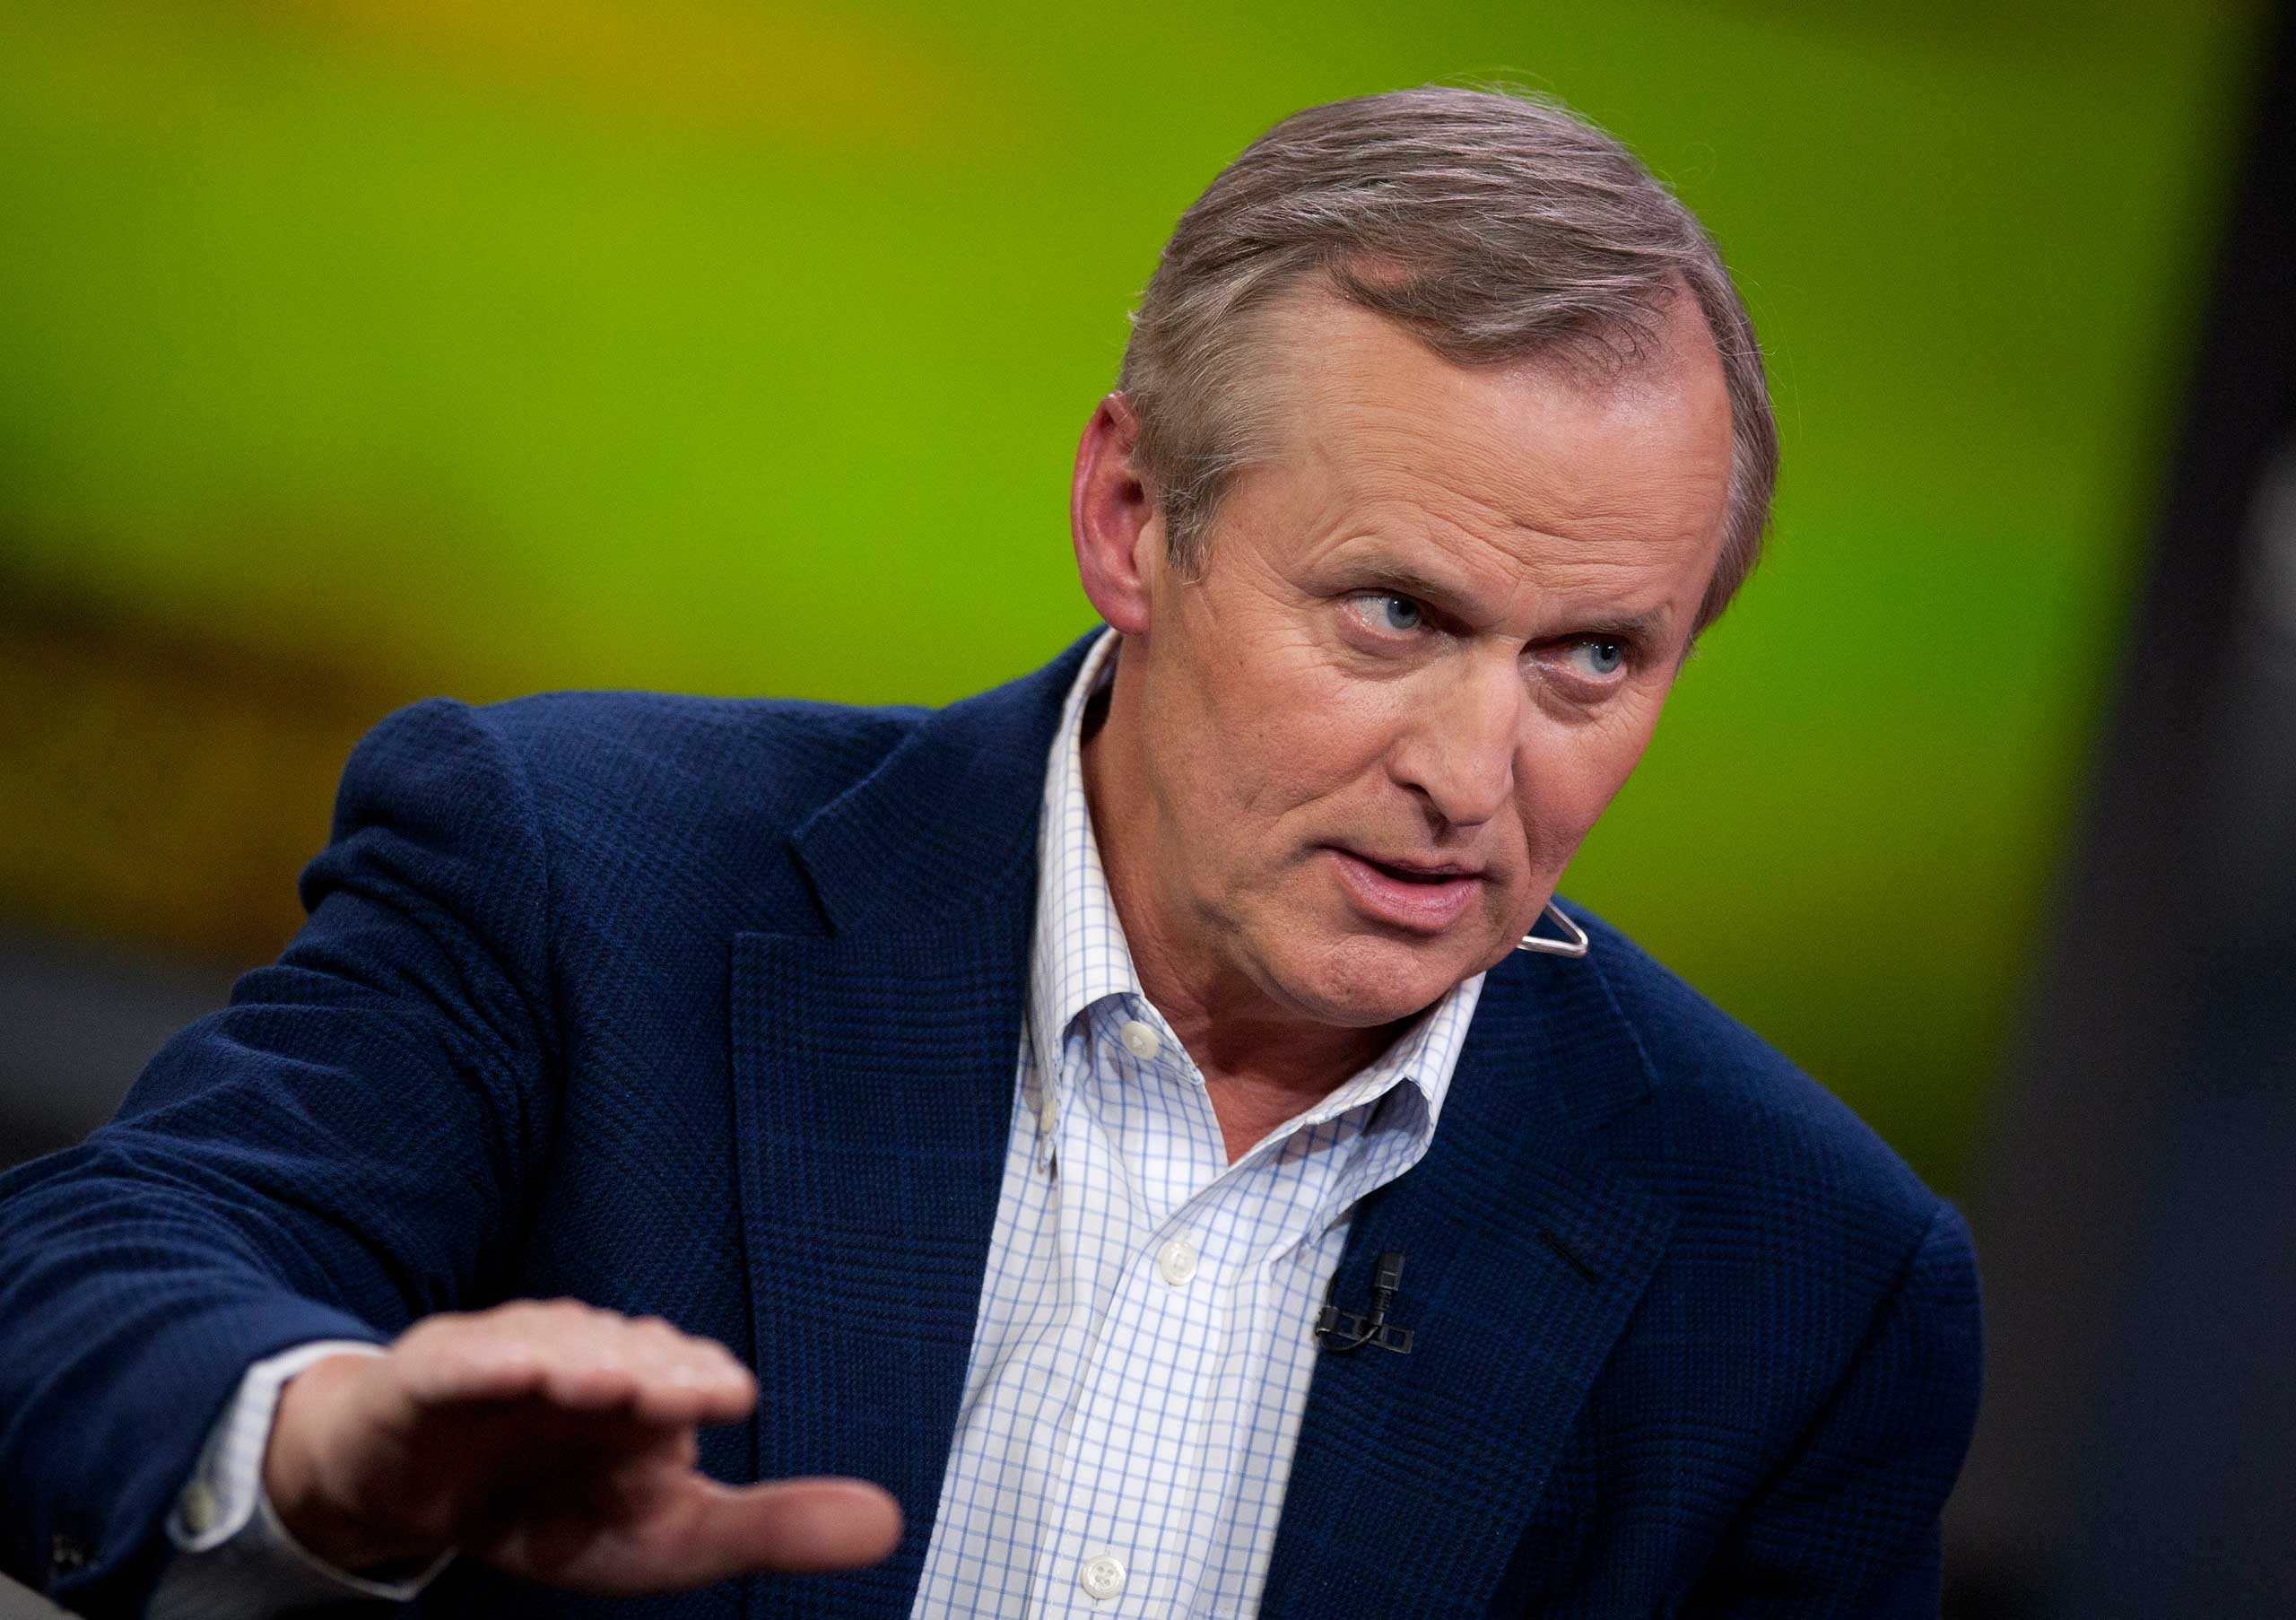 John Grisham speaks during a television interview in New York in 2012.